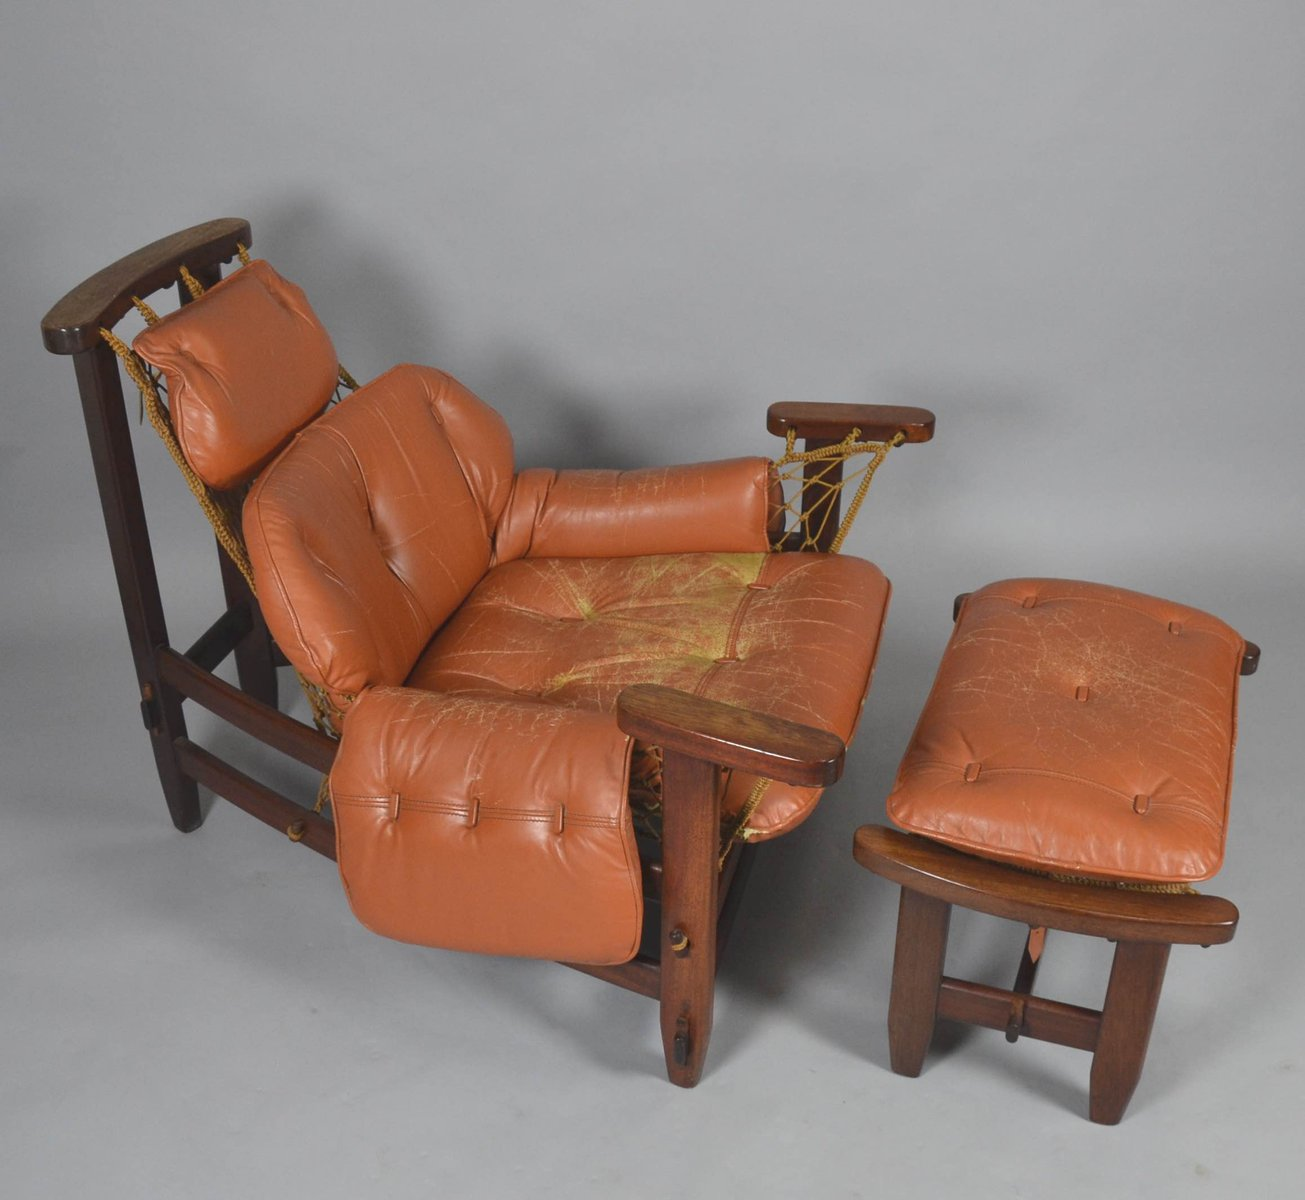 Vintage captain s chair with ottoman by jean gillon for